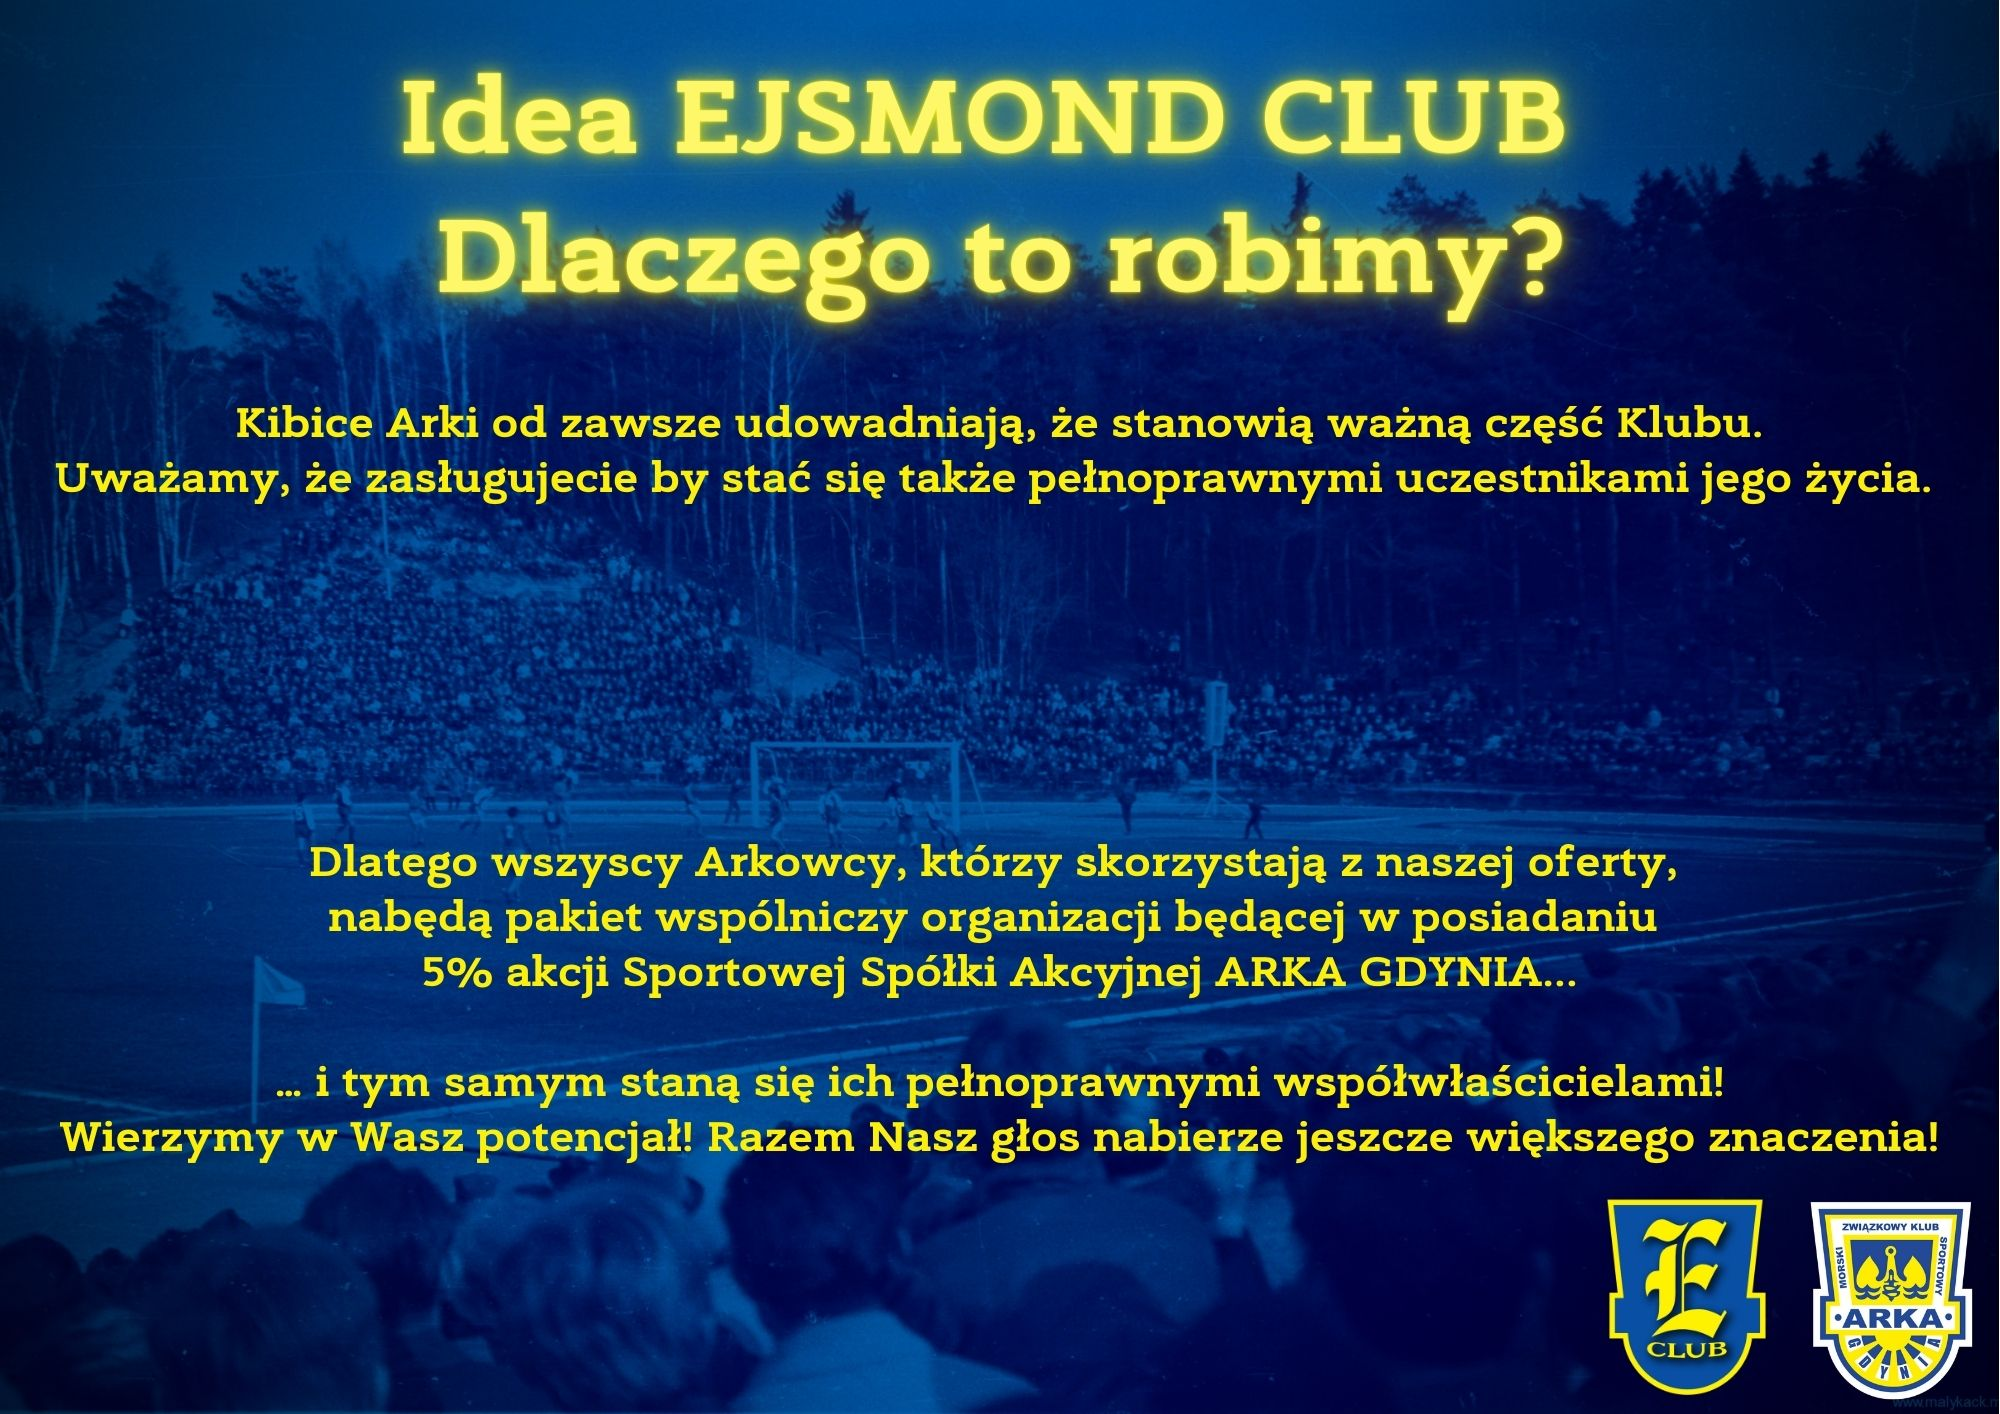 Idea EJSMOND CLUB